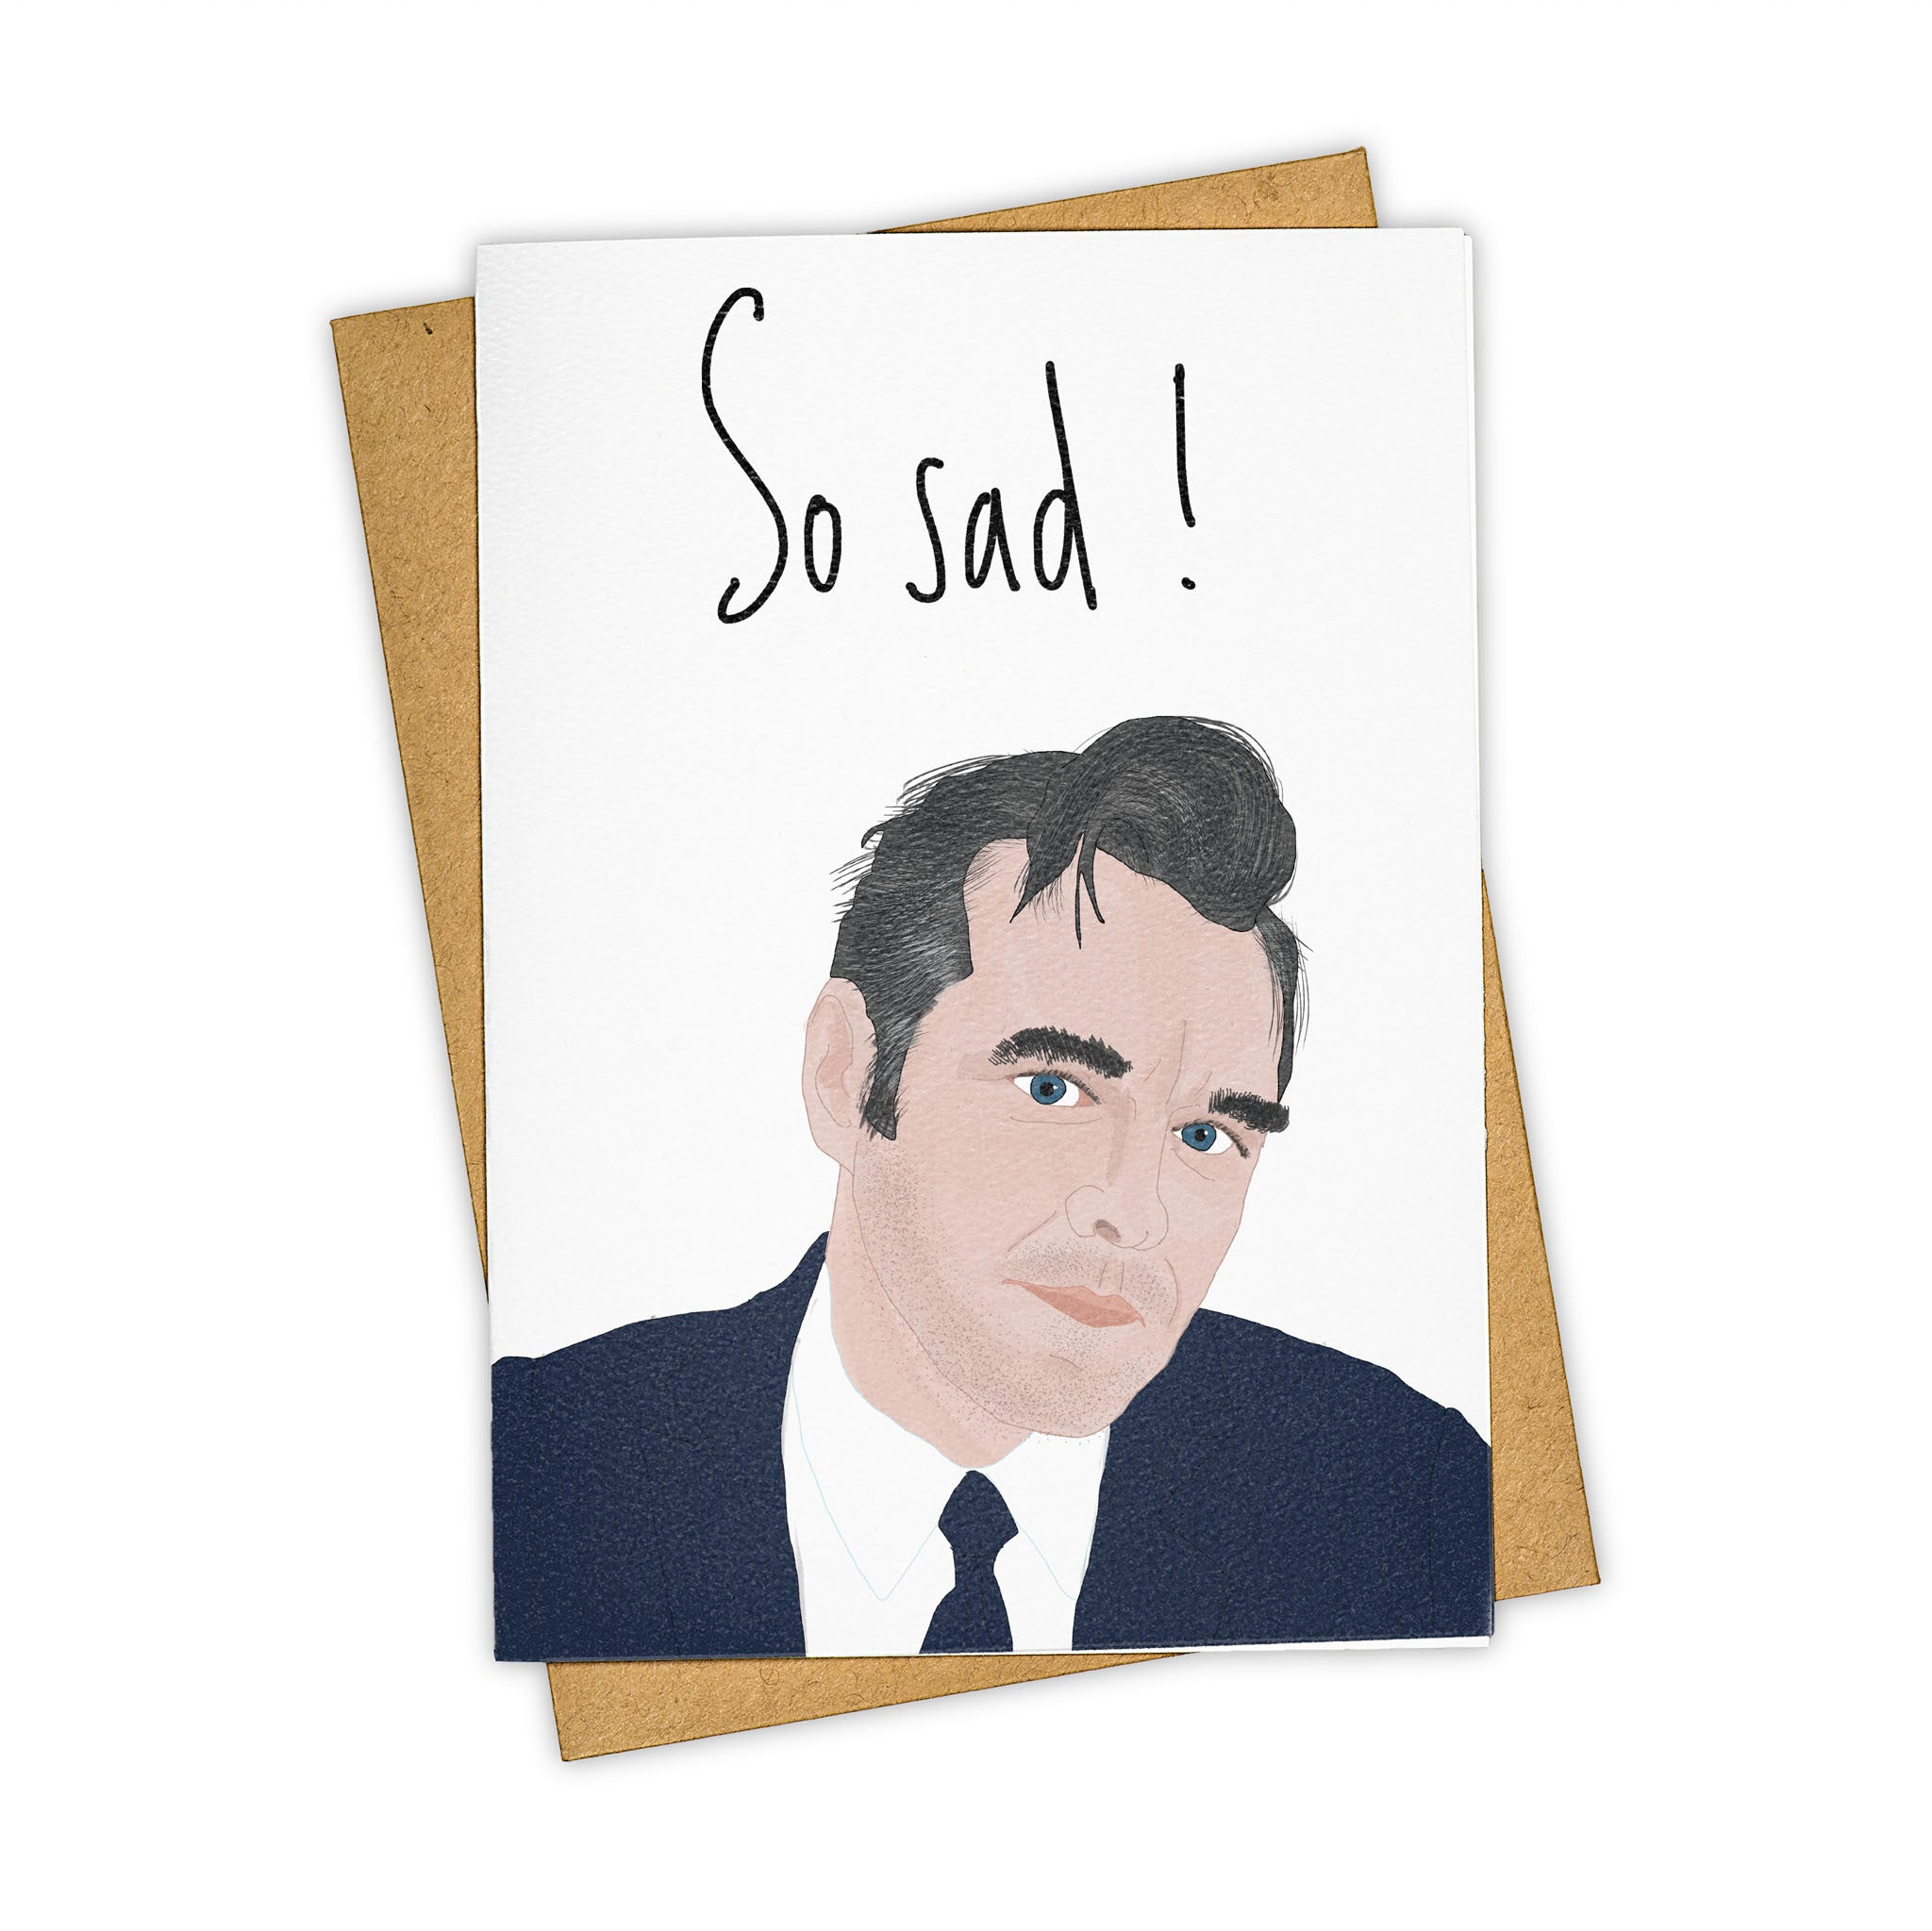 TAY HAM Morissey The Smiths Sad Songs Greeting Card